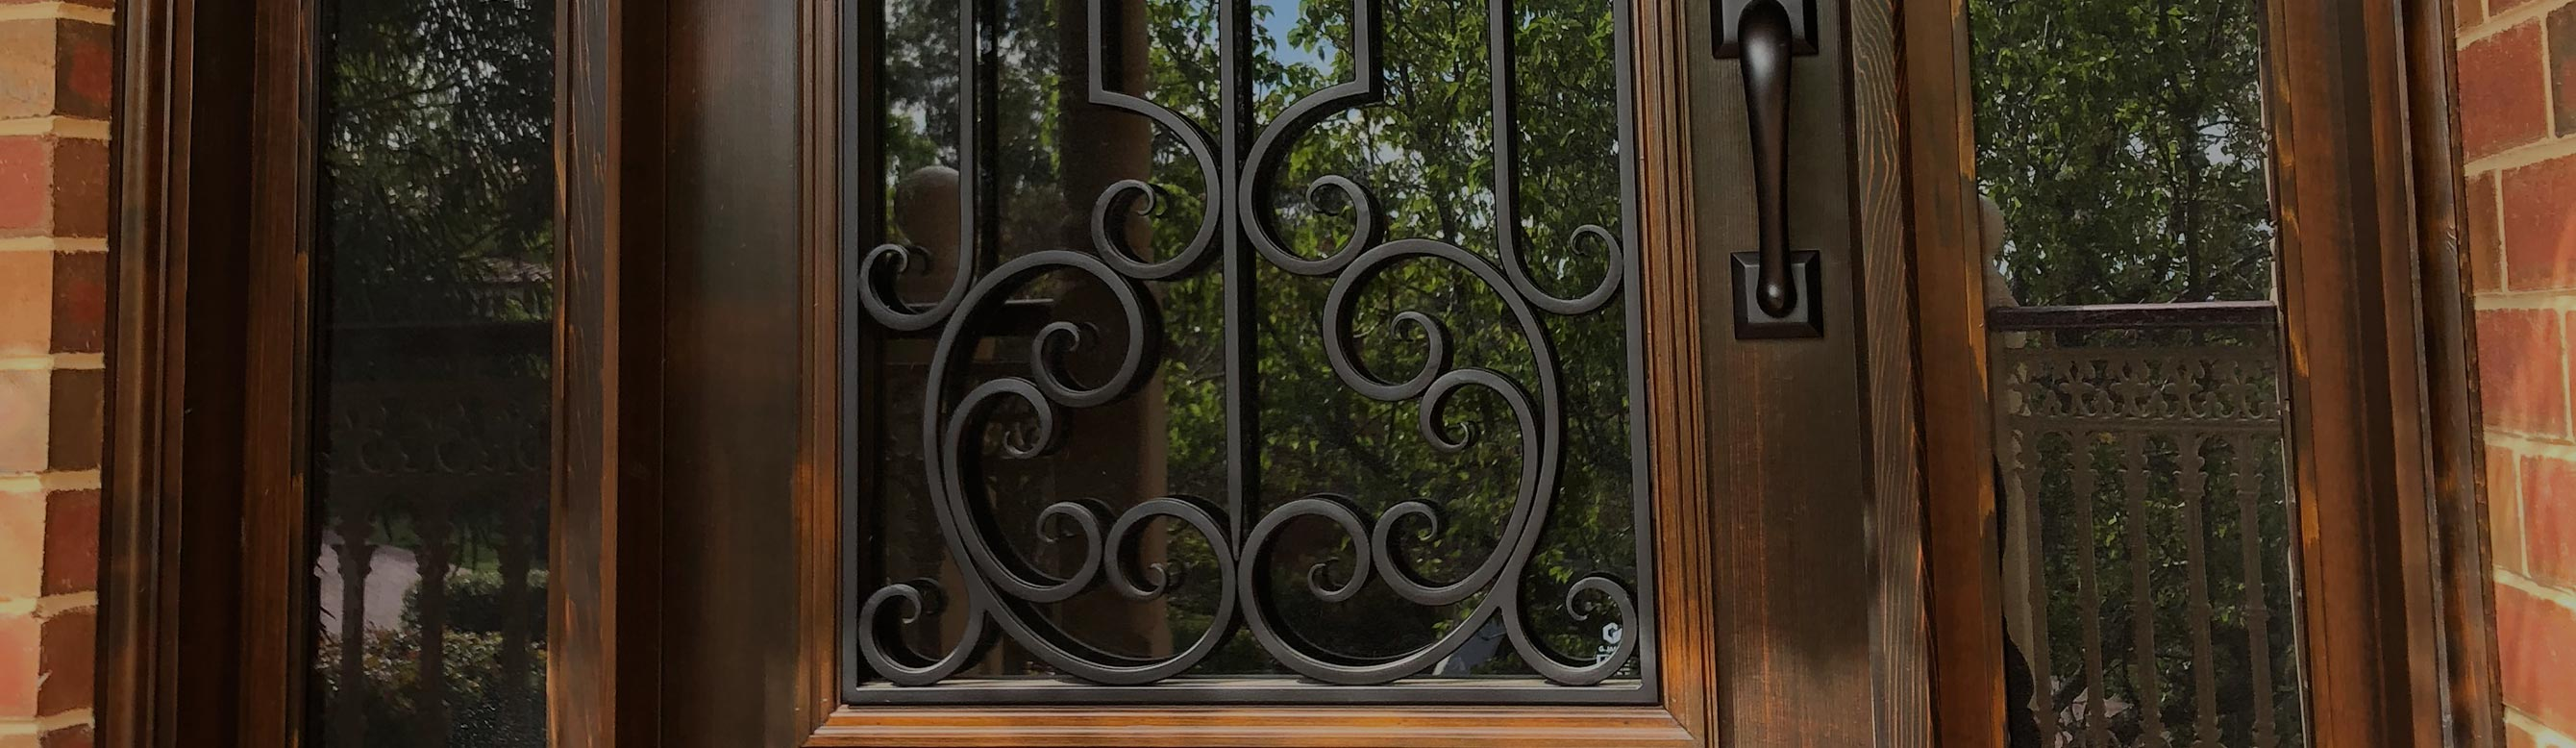 wrought iron doors Melbourne